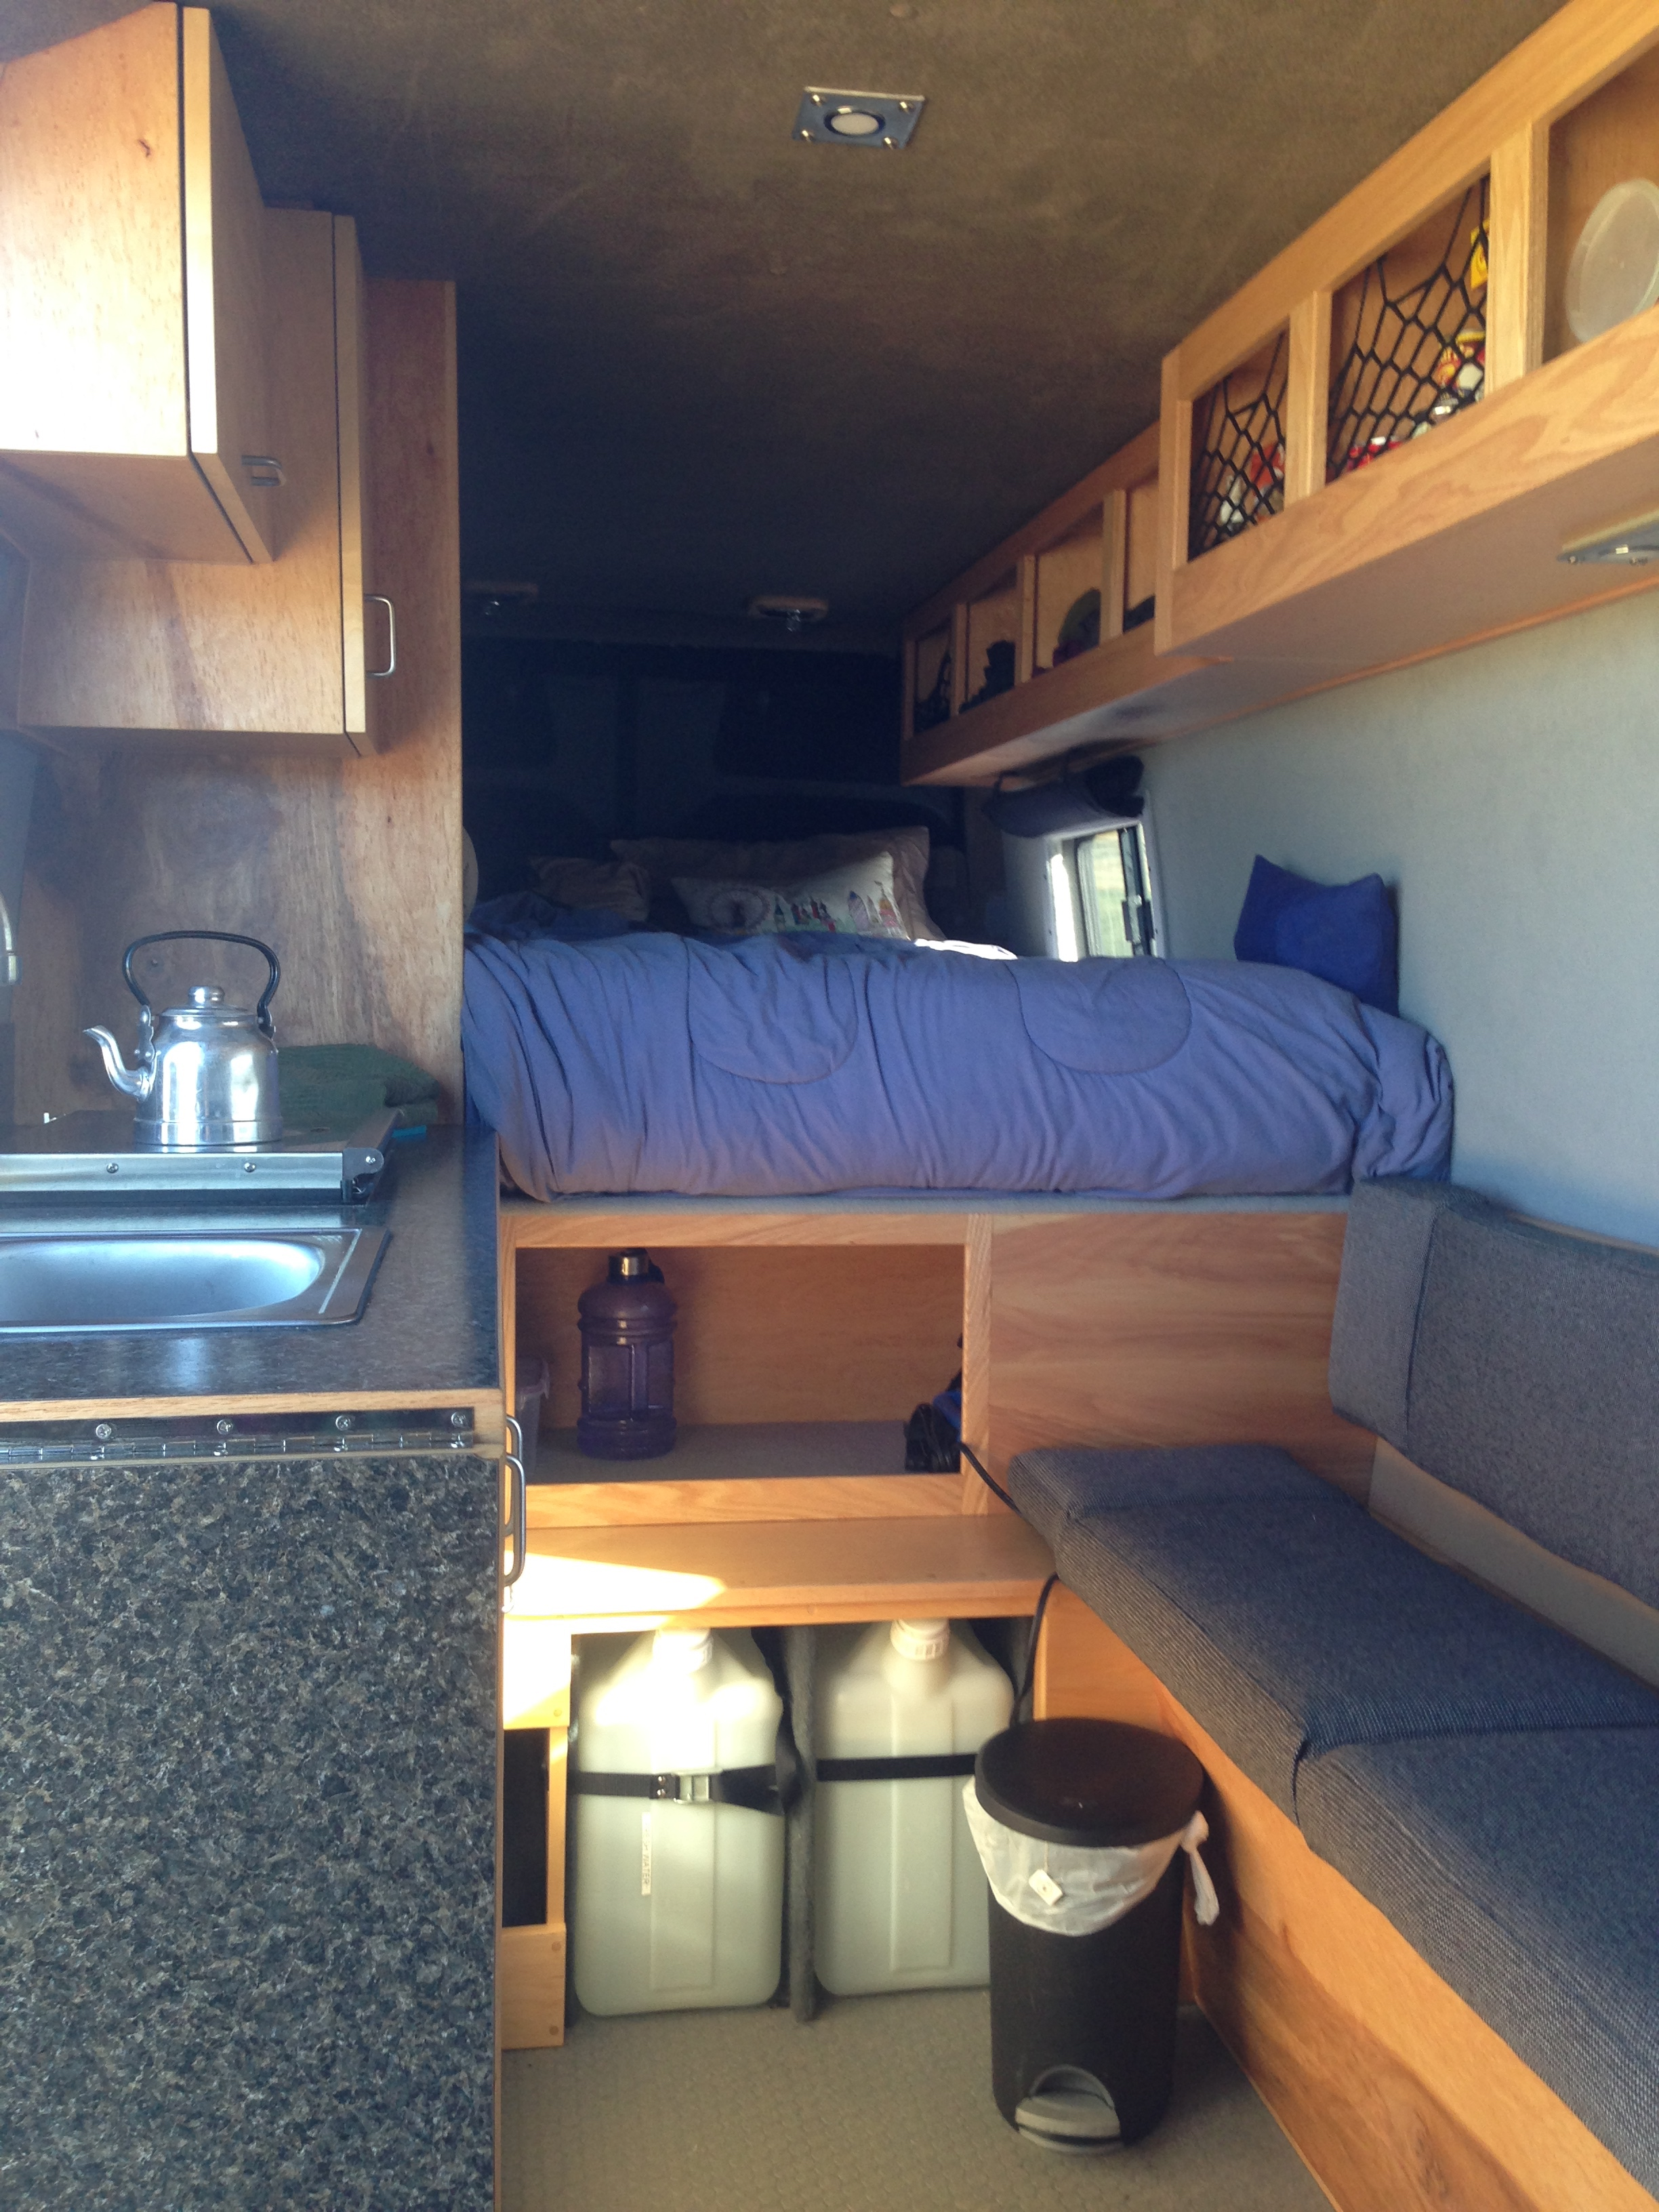 Sprinter van buildout van living 4 steph davis high for Average life of a mattress